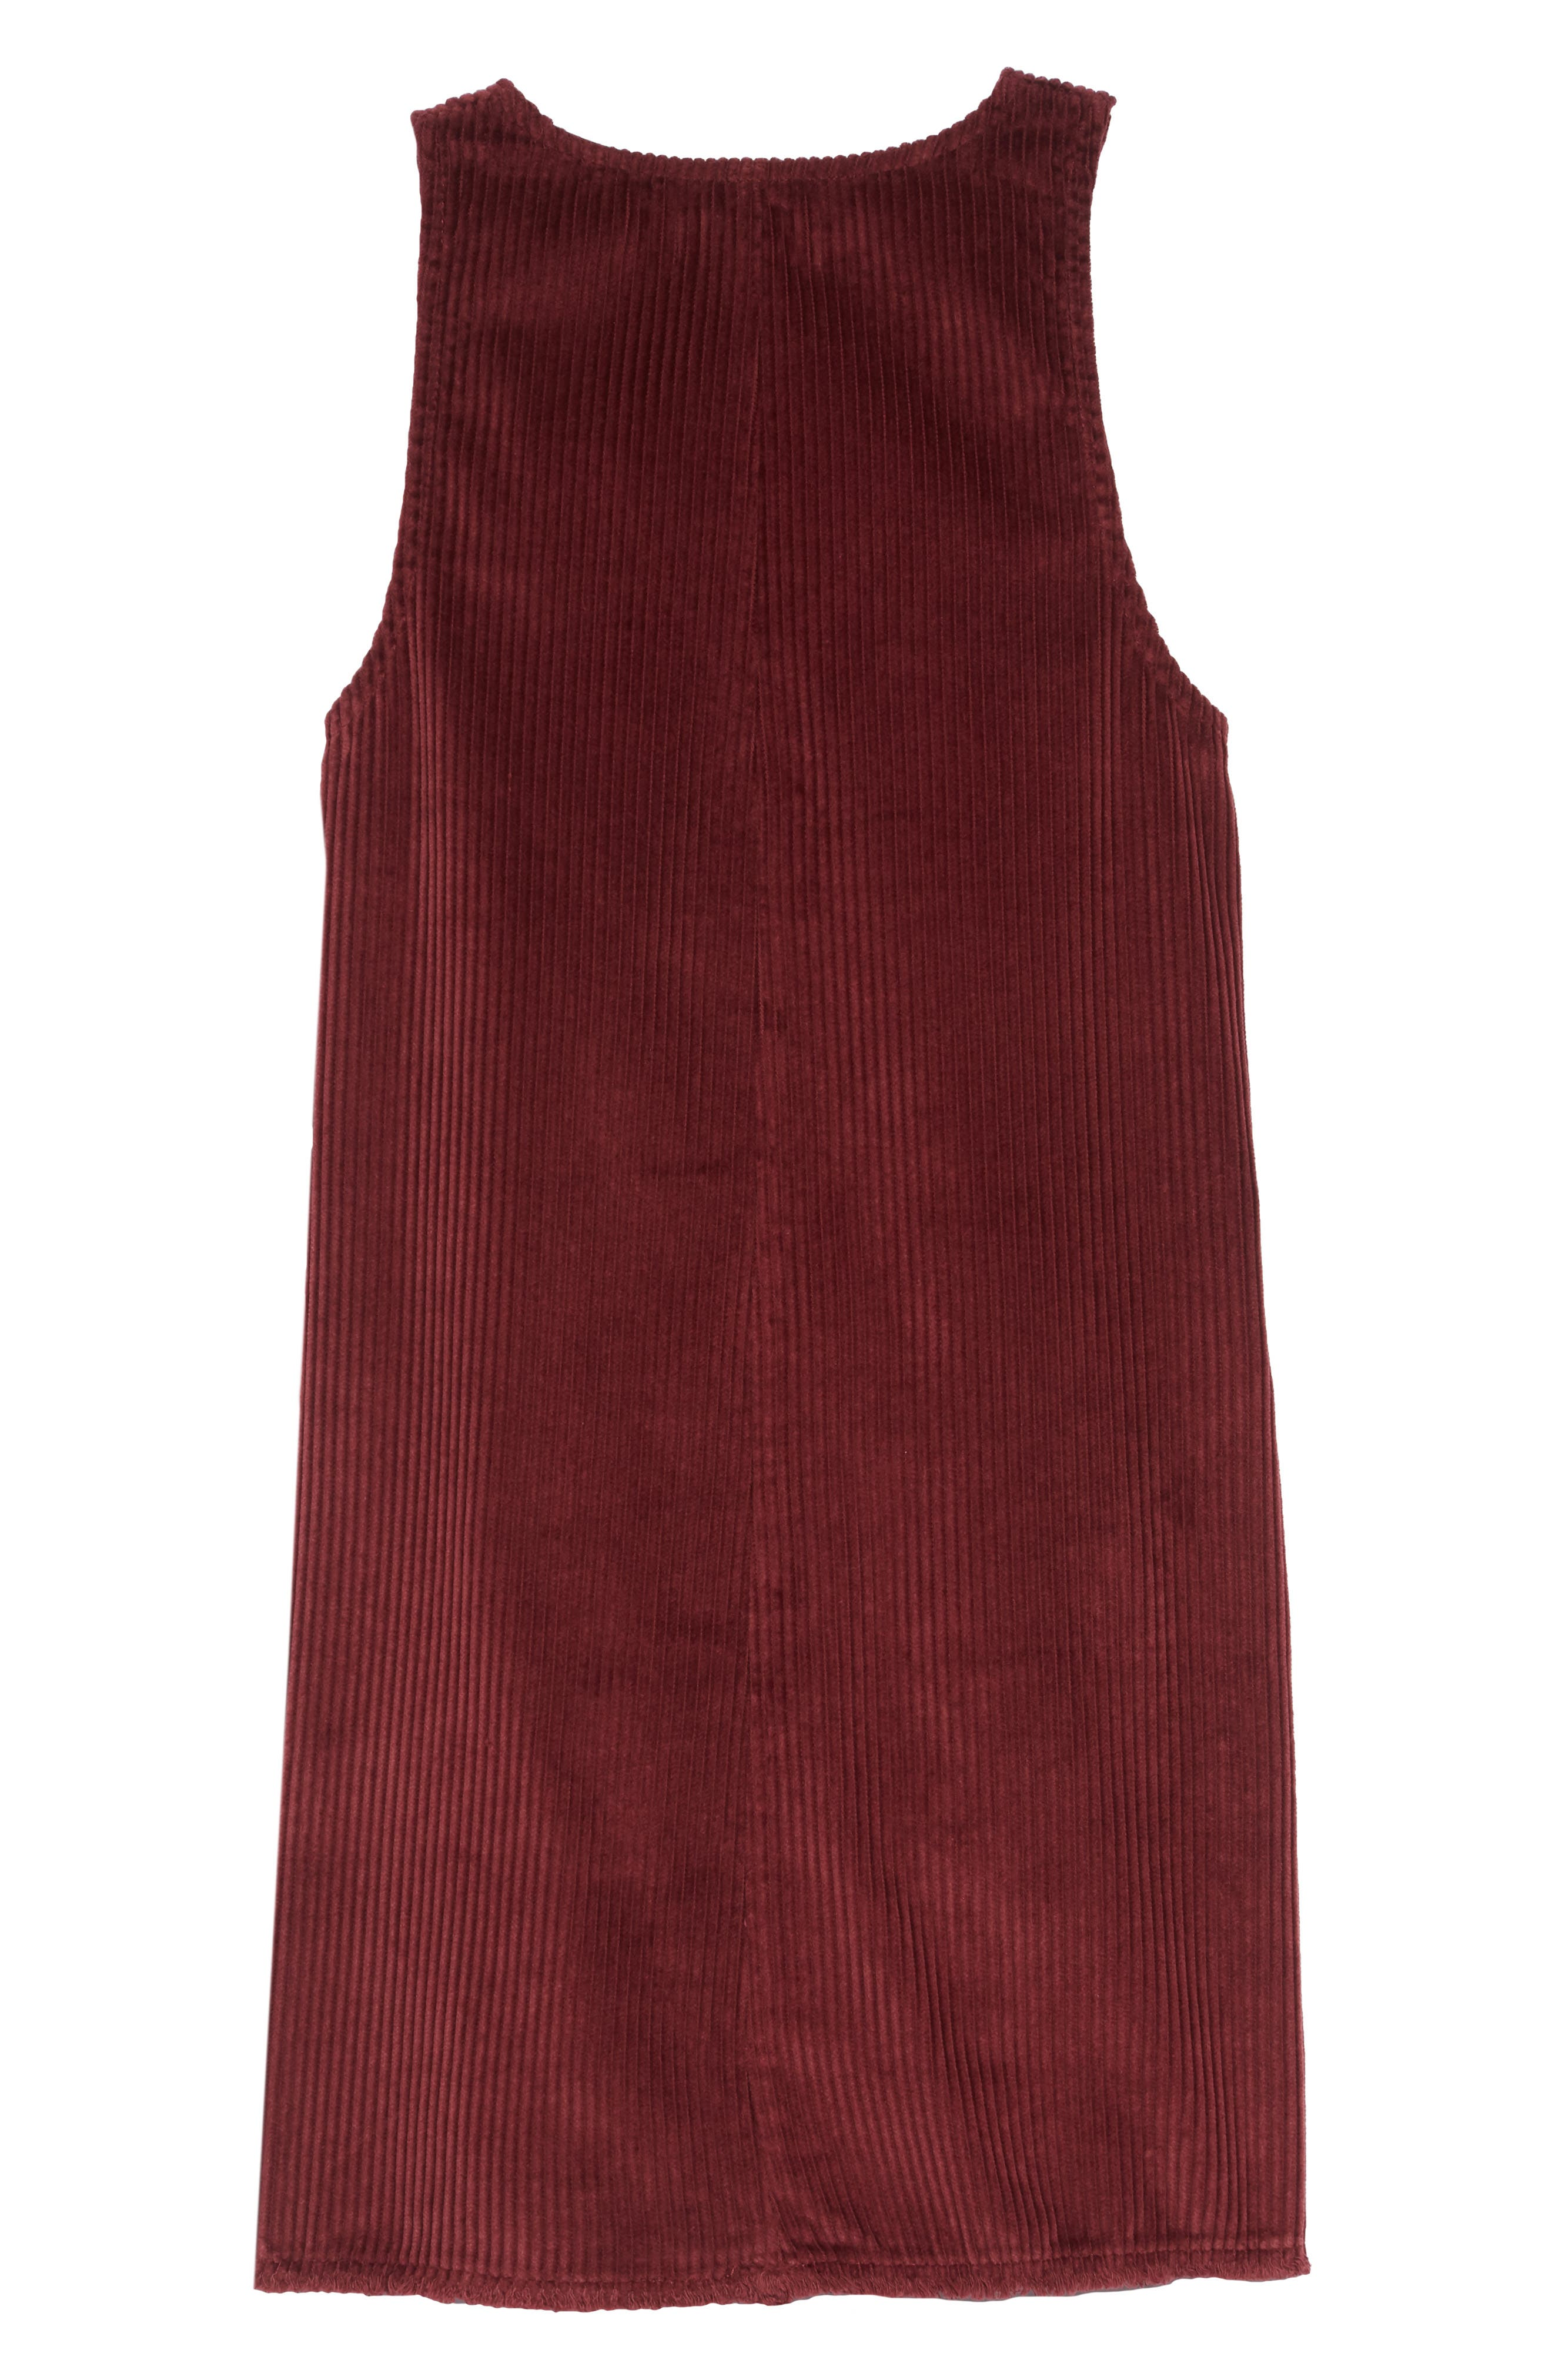 Corduroy Jumper Dress,                             Alternate thumbnail 2, color,                             RED TANNIN